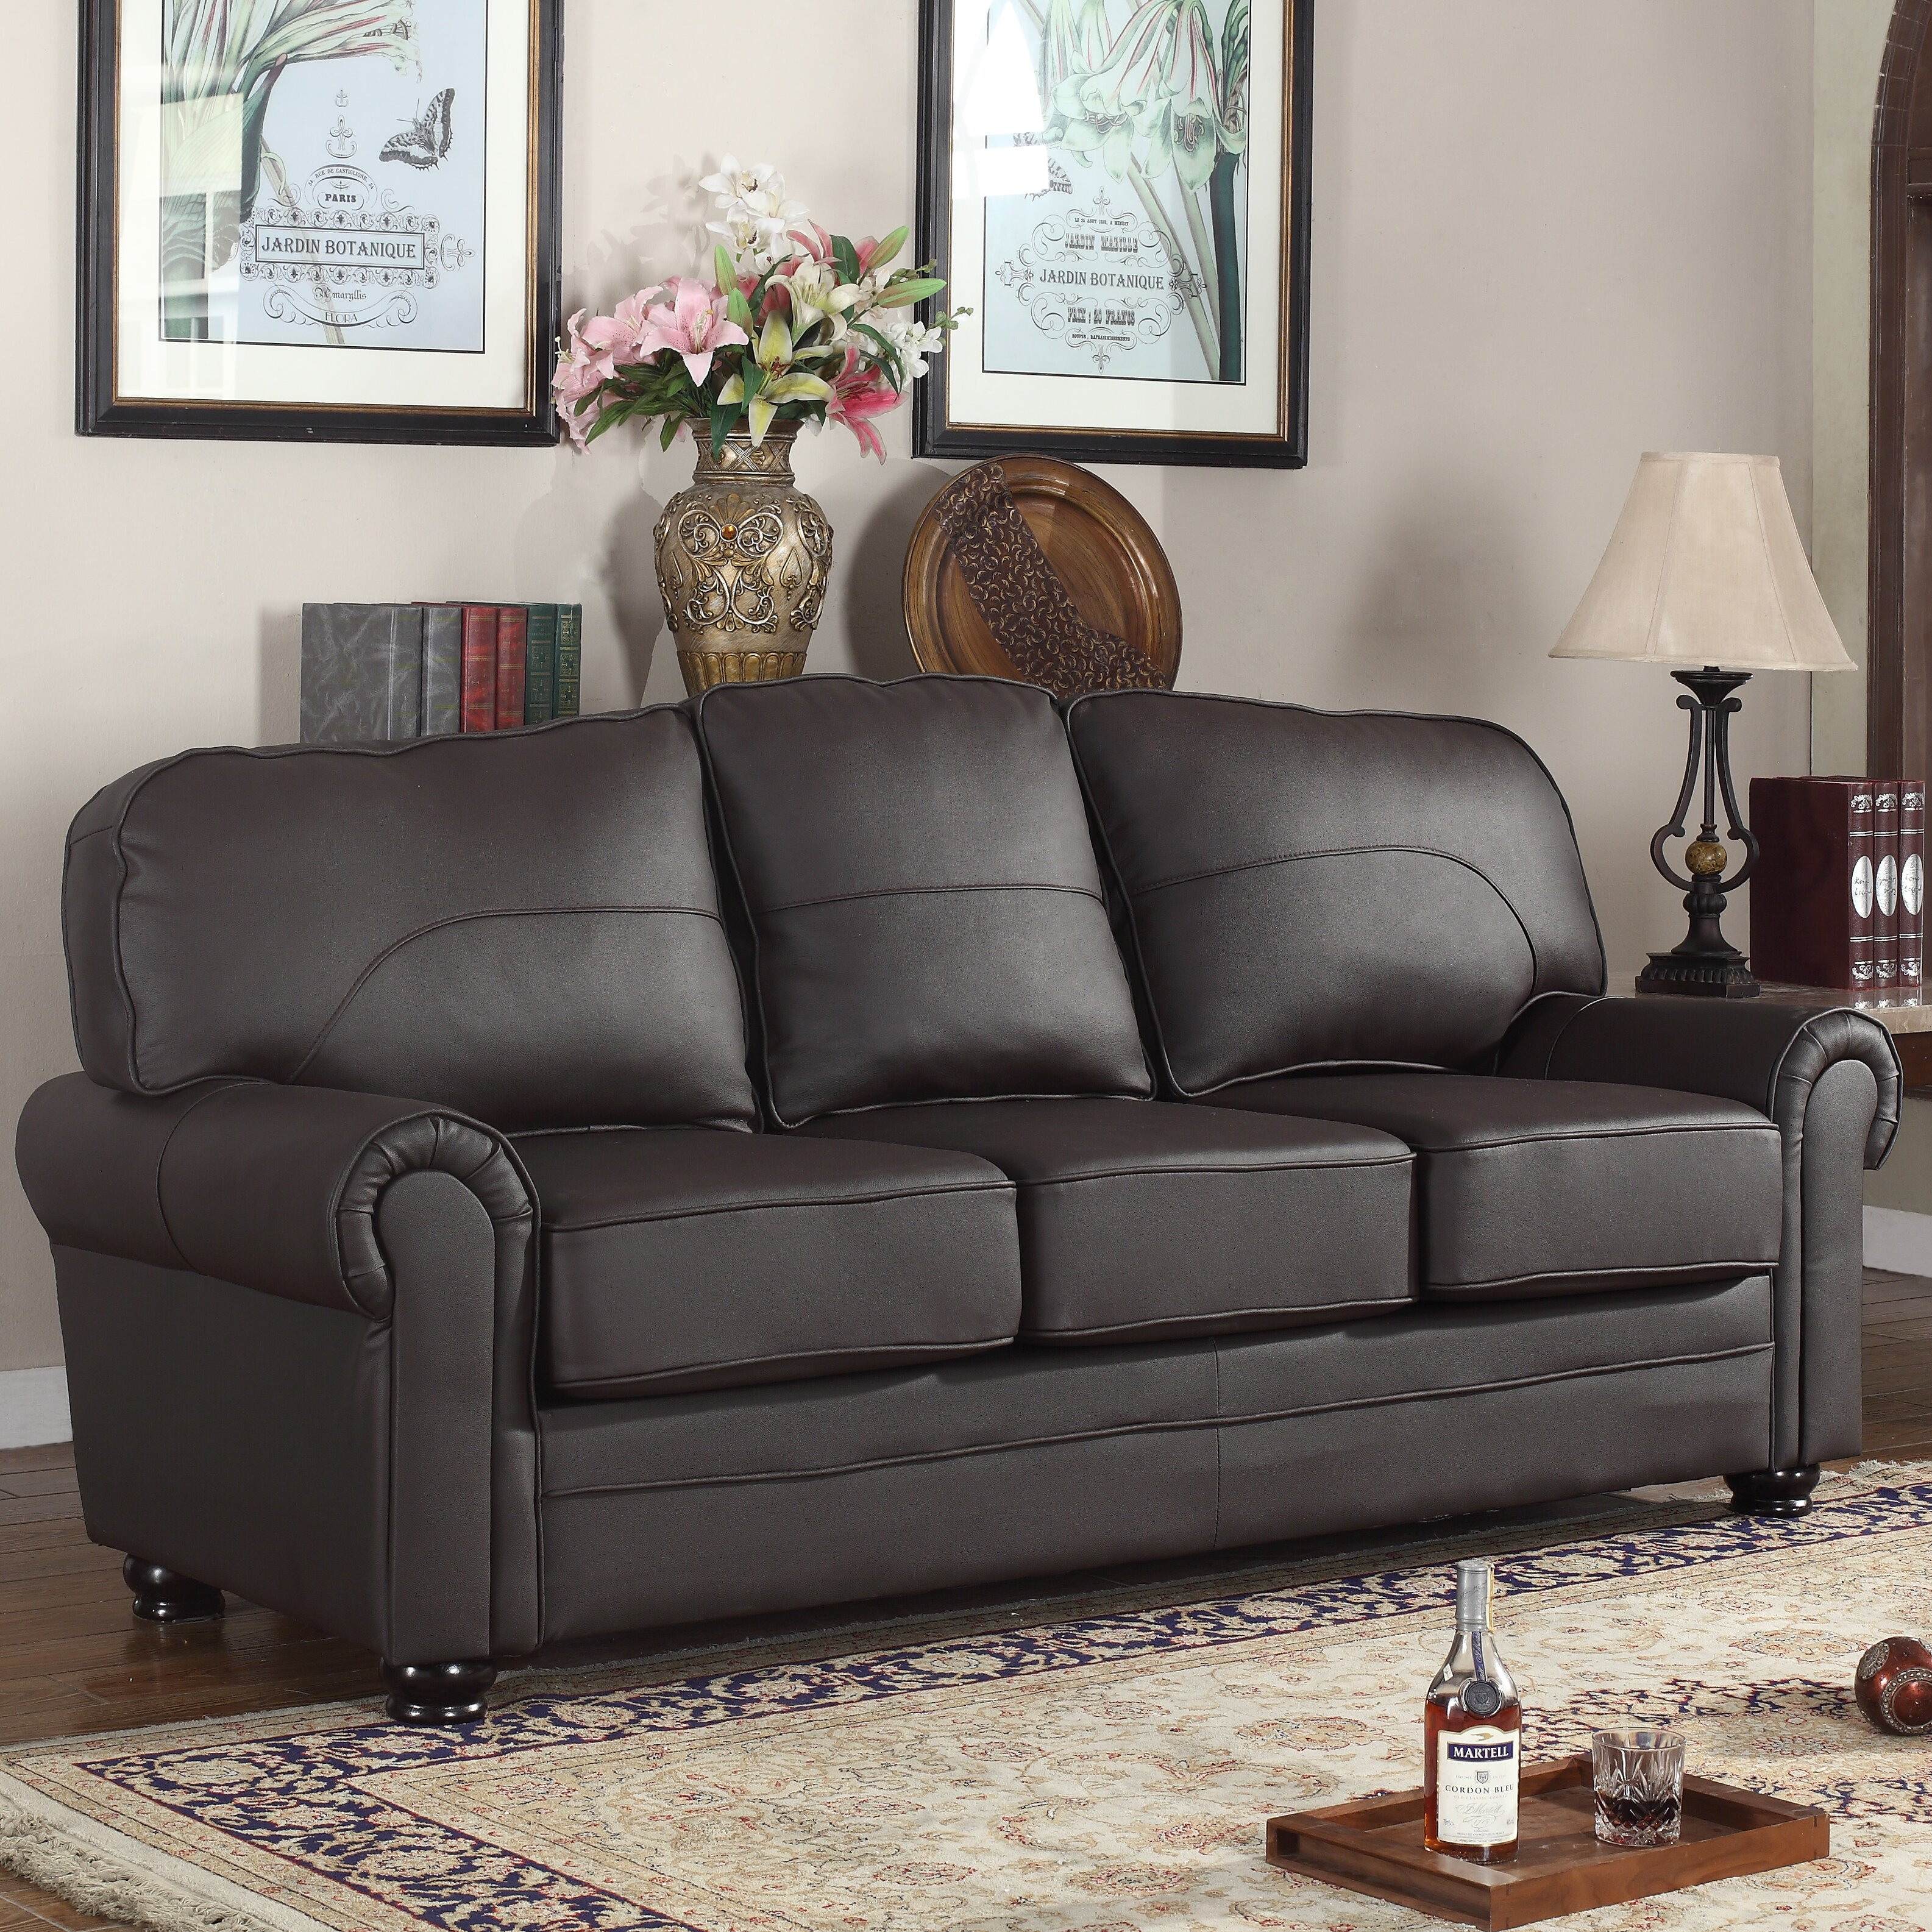 Genuine Leather Sectional Sofa Canada: Madison Home USA Leather Sofa & Reviews